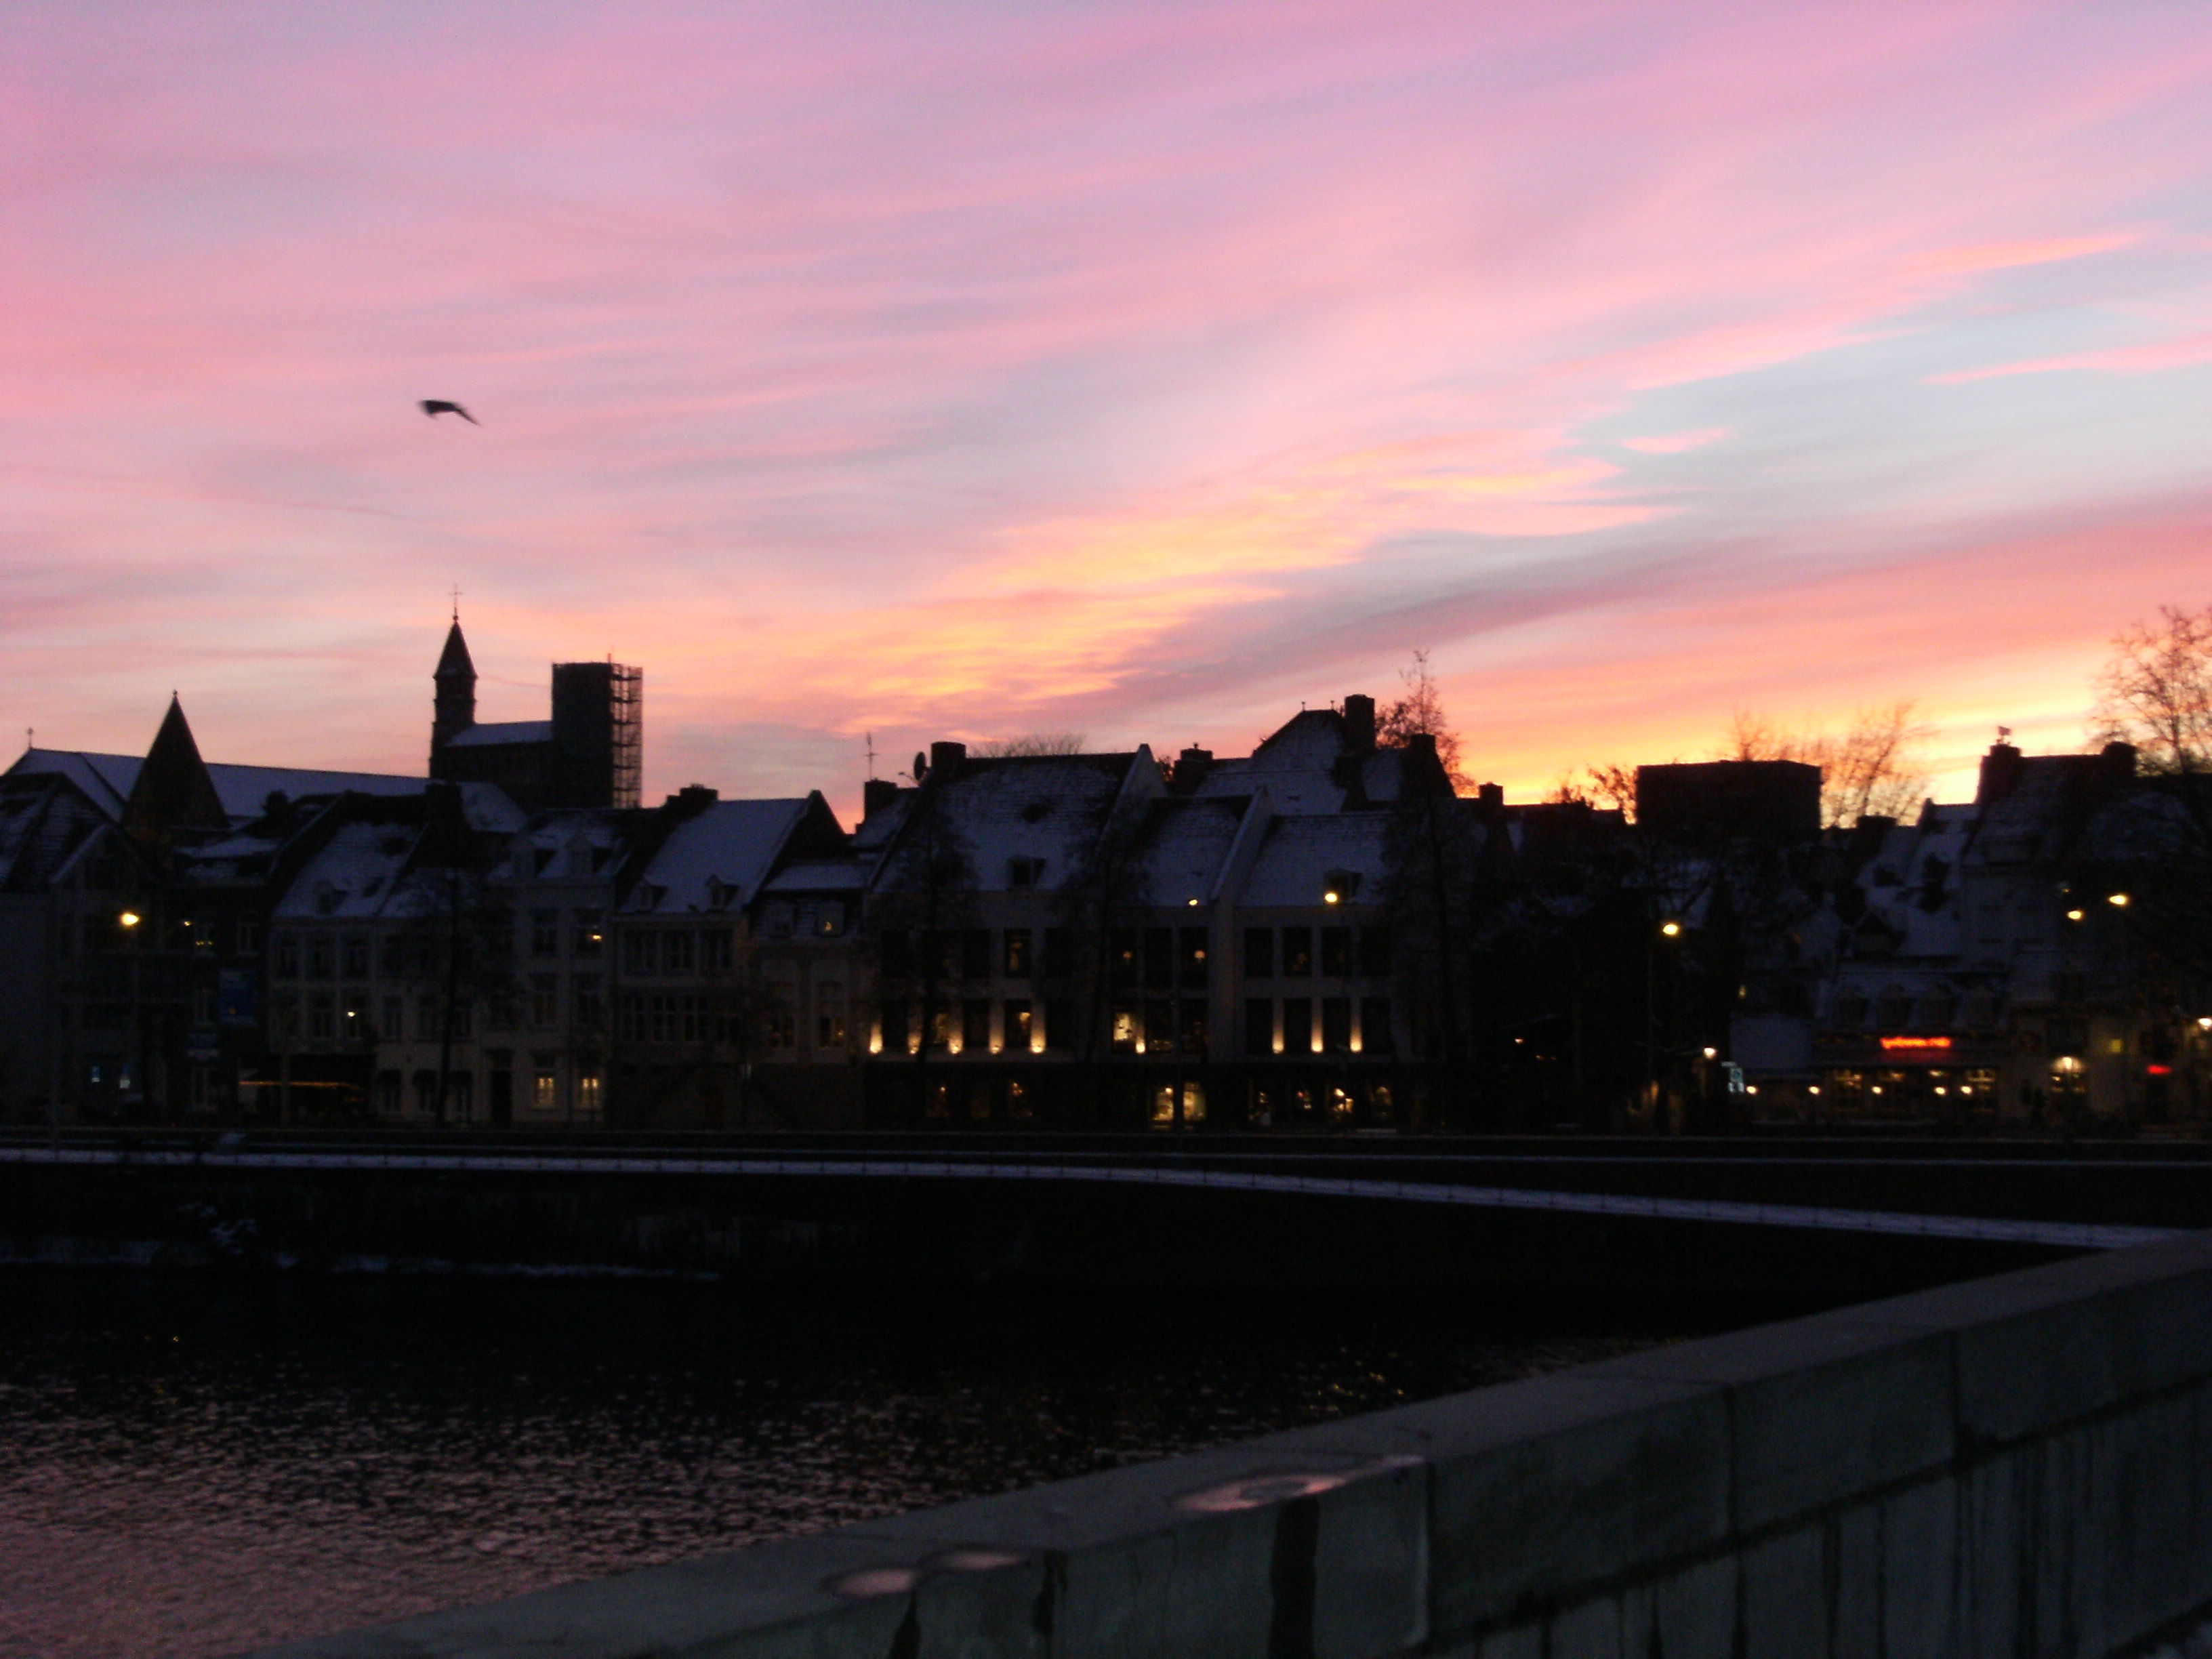 File:Maastricht view from St. Servatius bridge at city at dusk.JPG ...